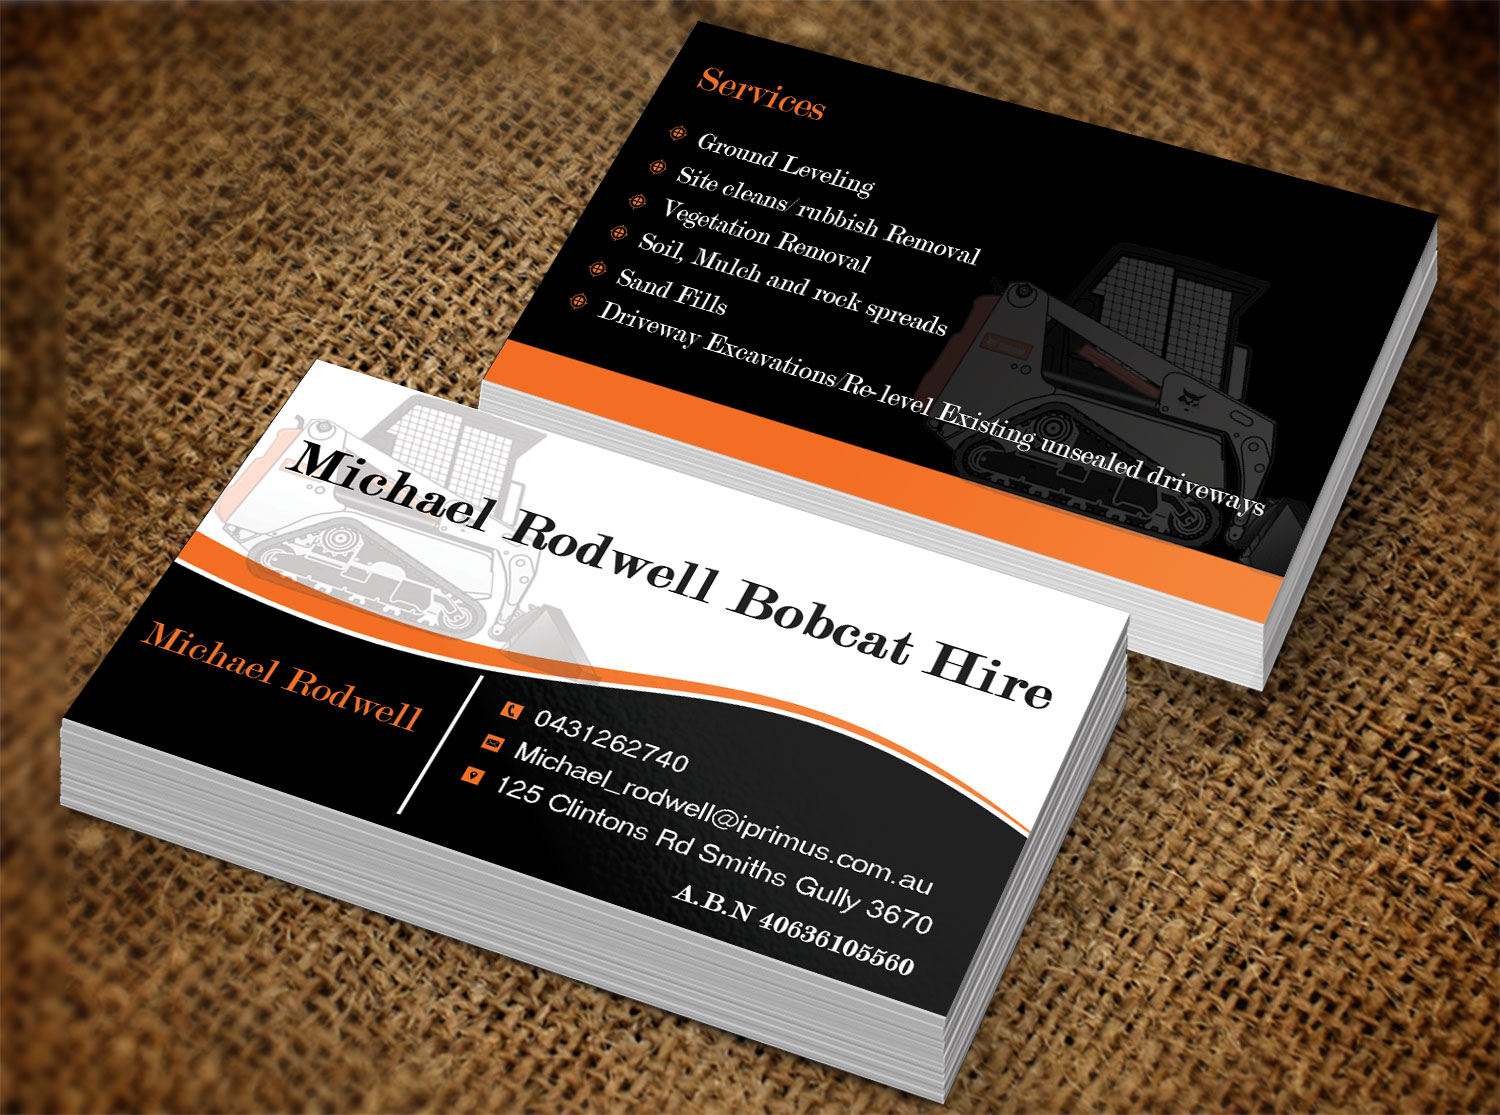 Serious bold business card design by creation lanka design 8399793 business card design by creation lanka for this project design 8399793 colourmoves Choice Image